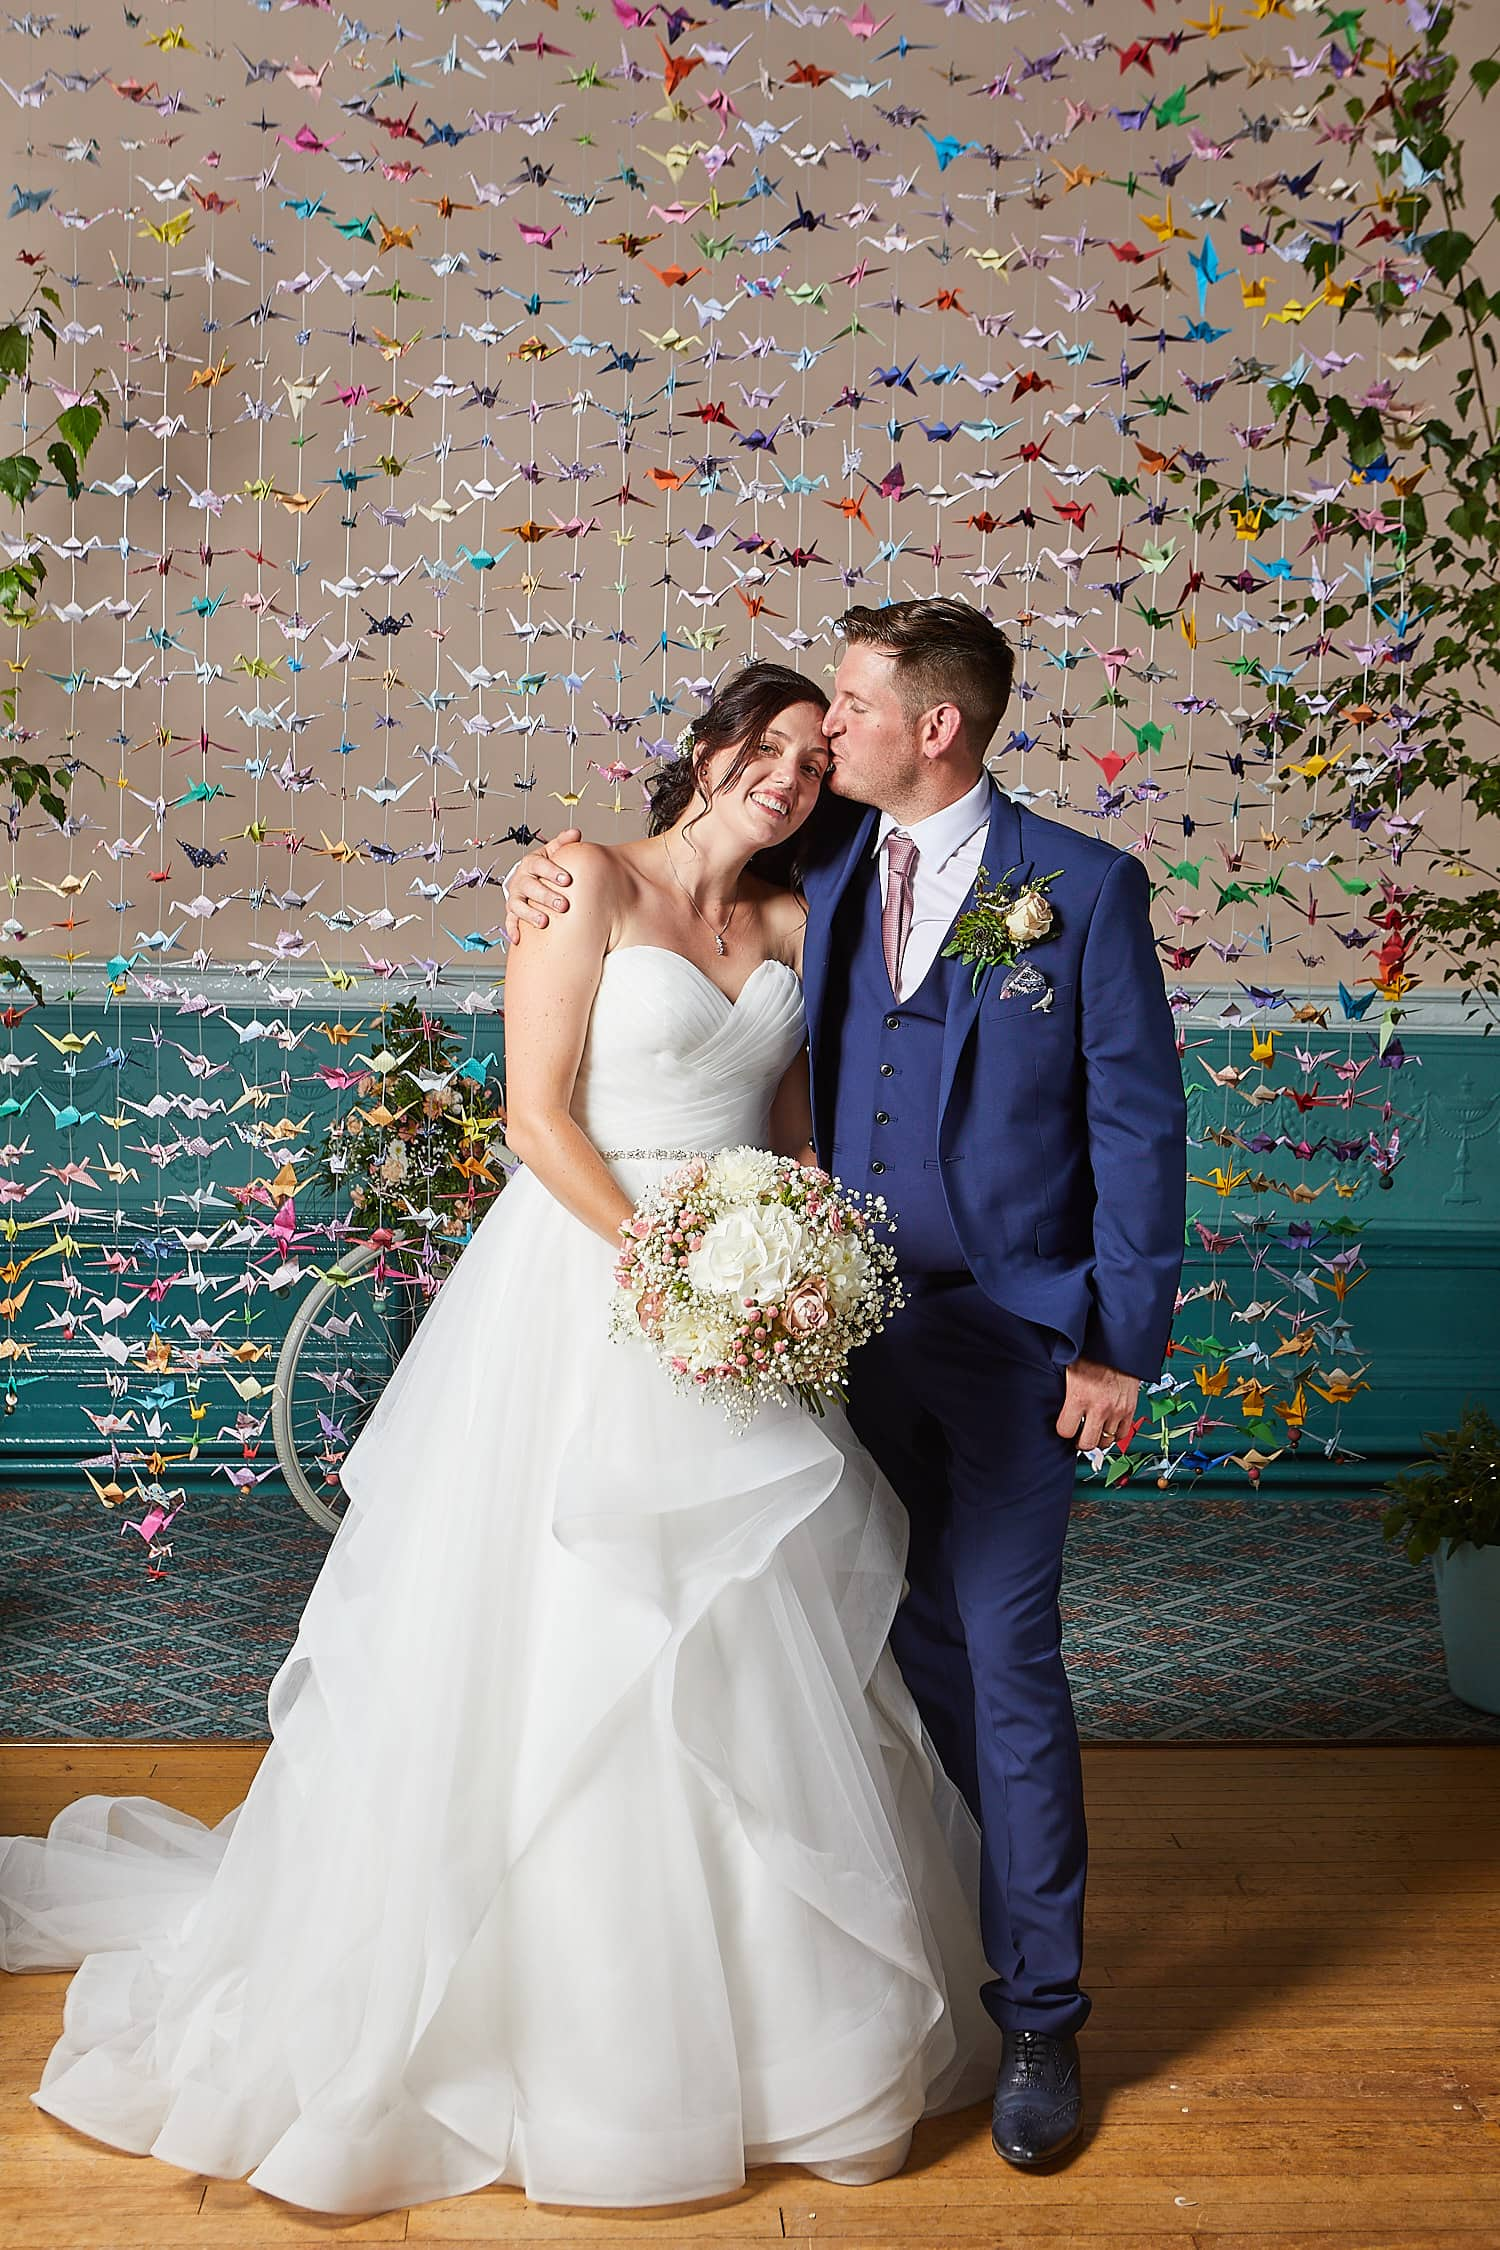 A couple kiss in front of a hand-made wedding backdrop